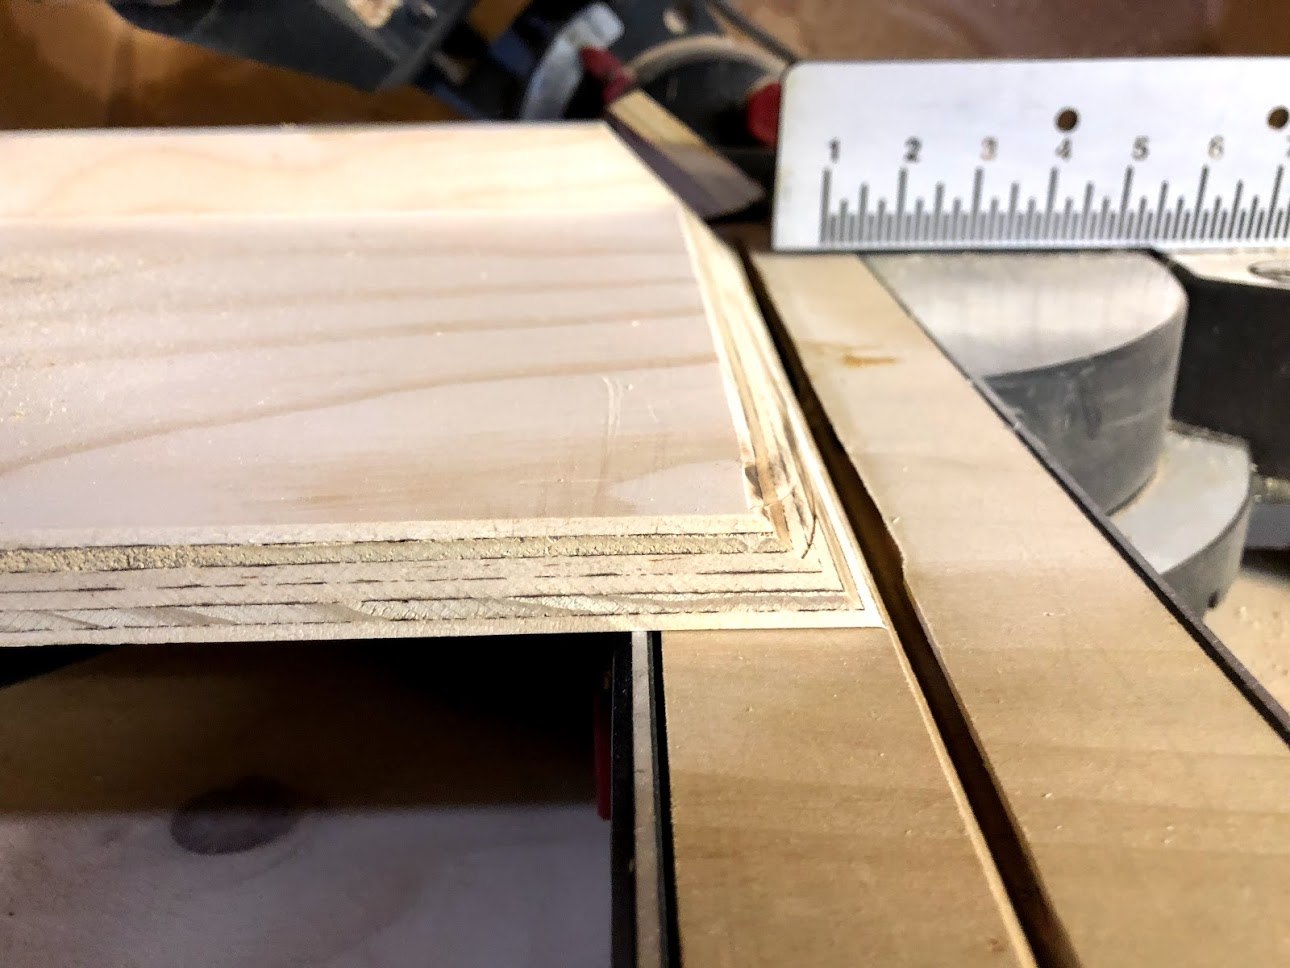 Here is the mitered edge of the miter saw sled, I used this edge as a reference to line up my cuts.